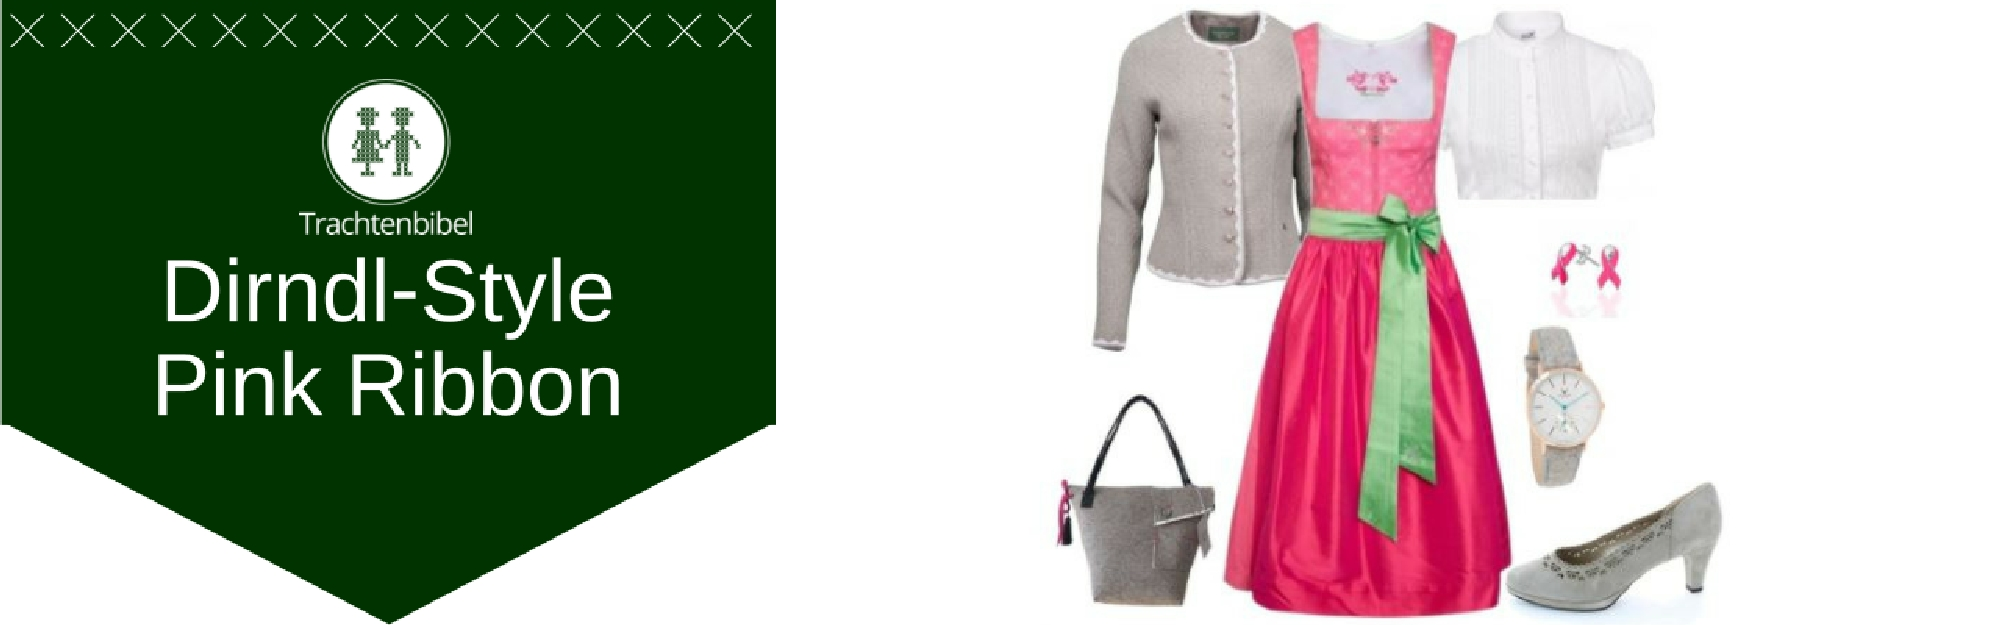 Pink Ribbon Dirndl Outfit